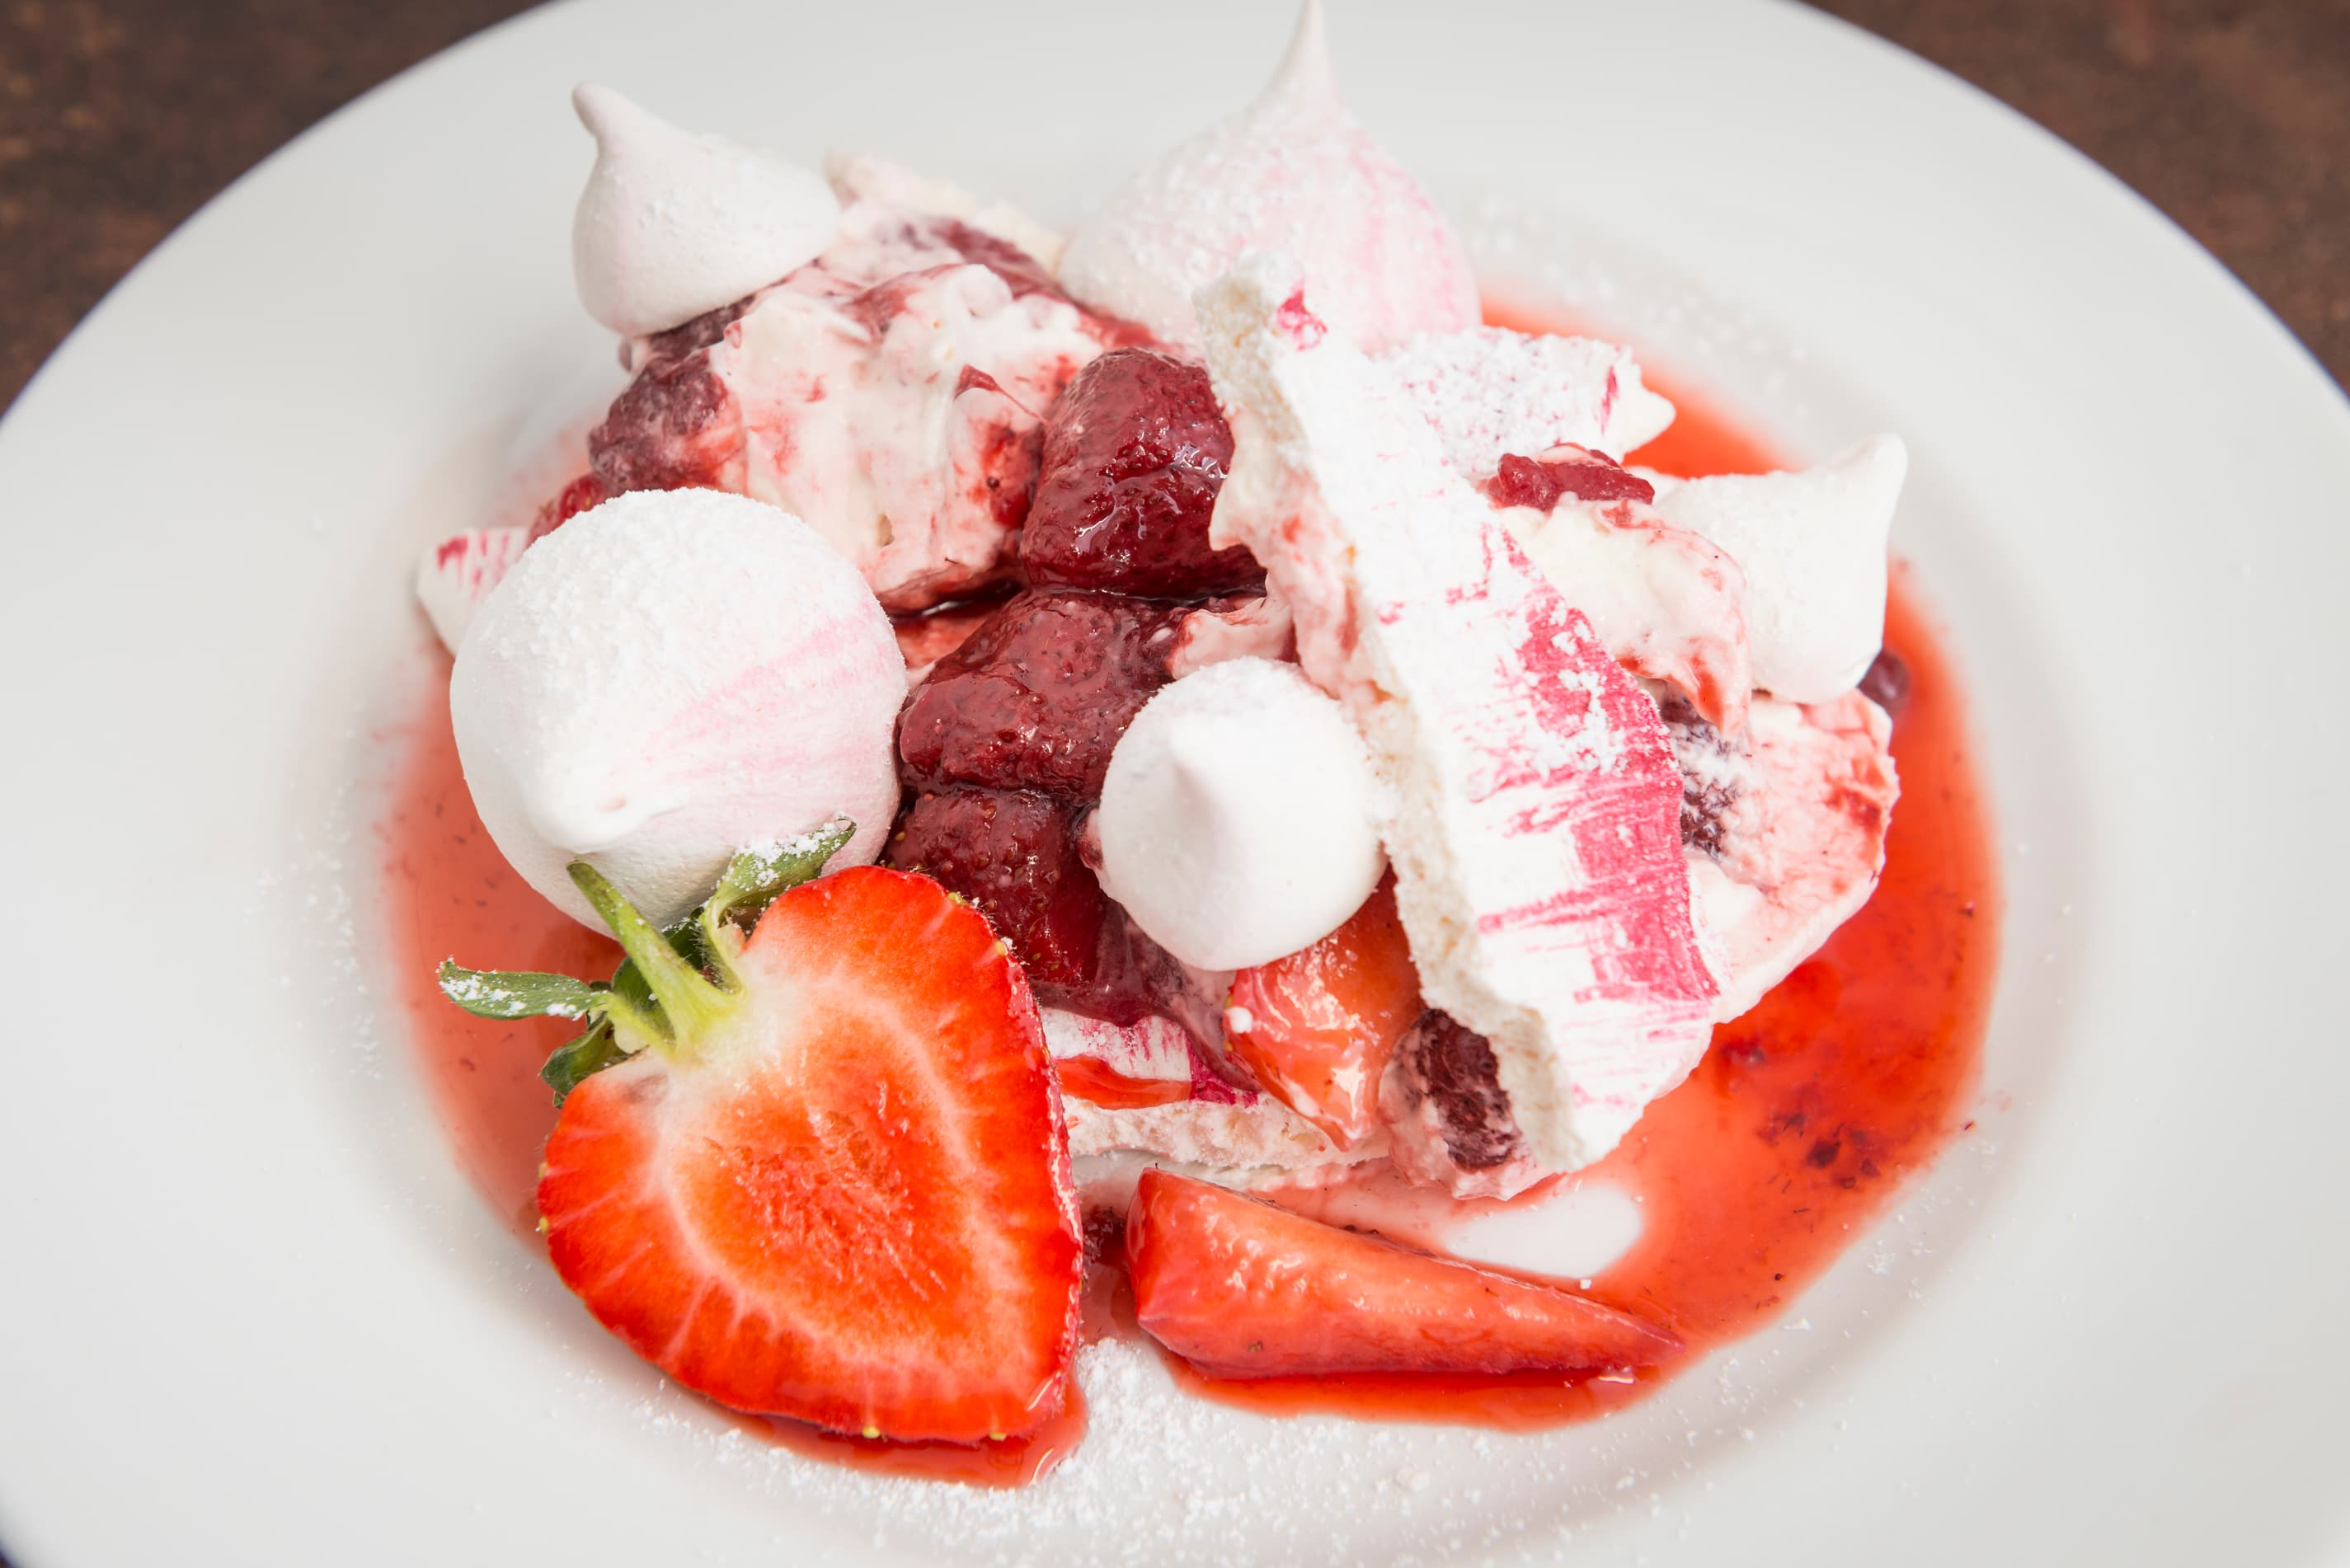 Eton mess with fresh strawberries for one or two to share (V)